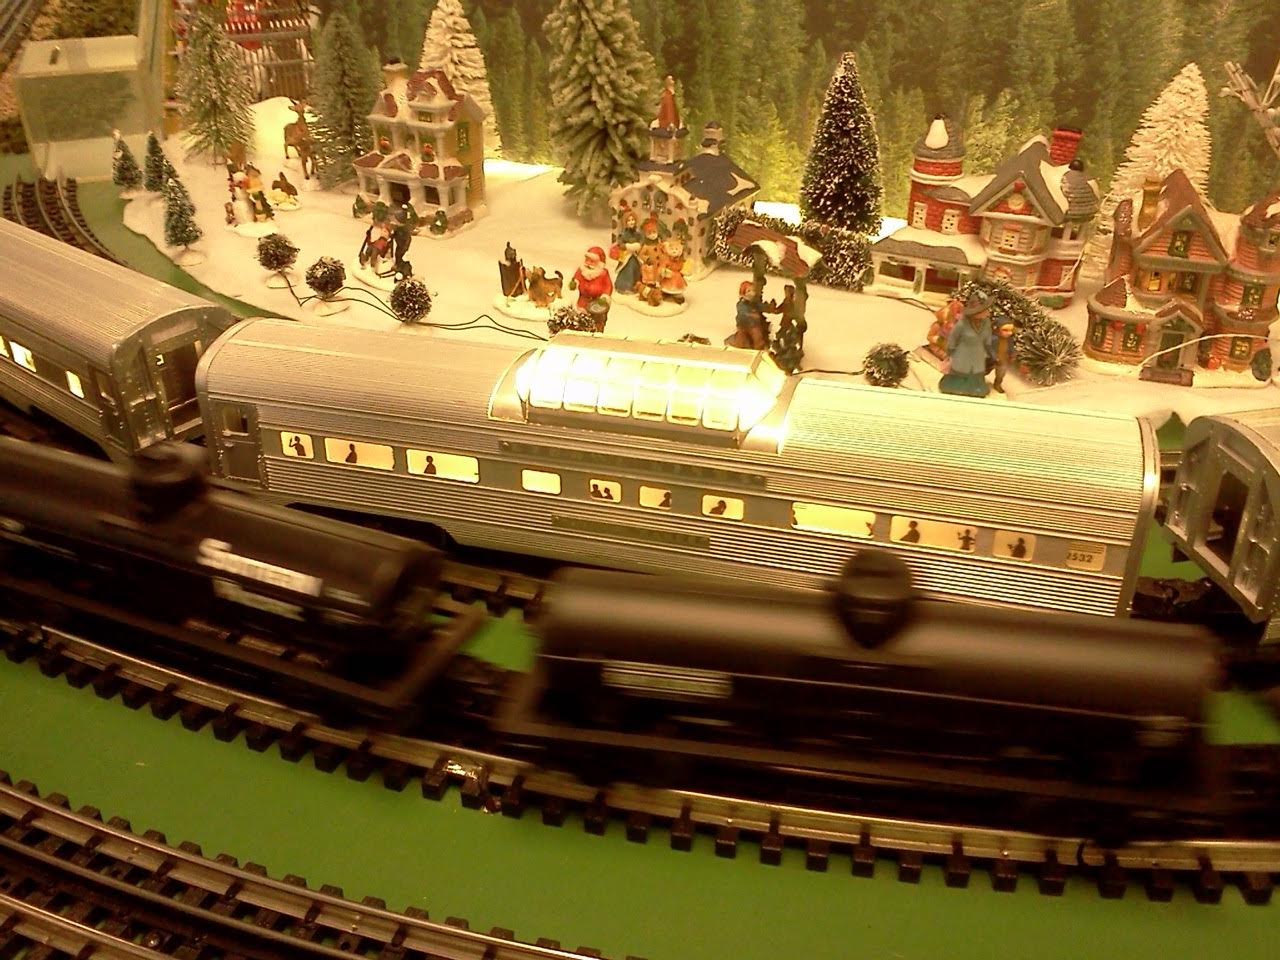 6th Annual Holiday Model Train Show in ArtSpace